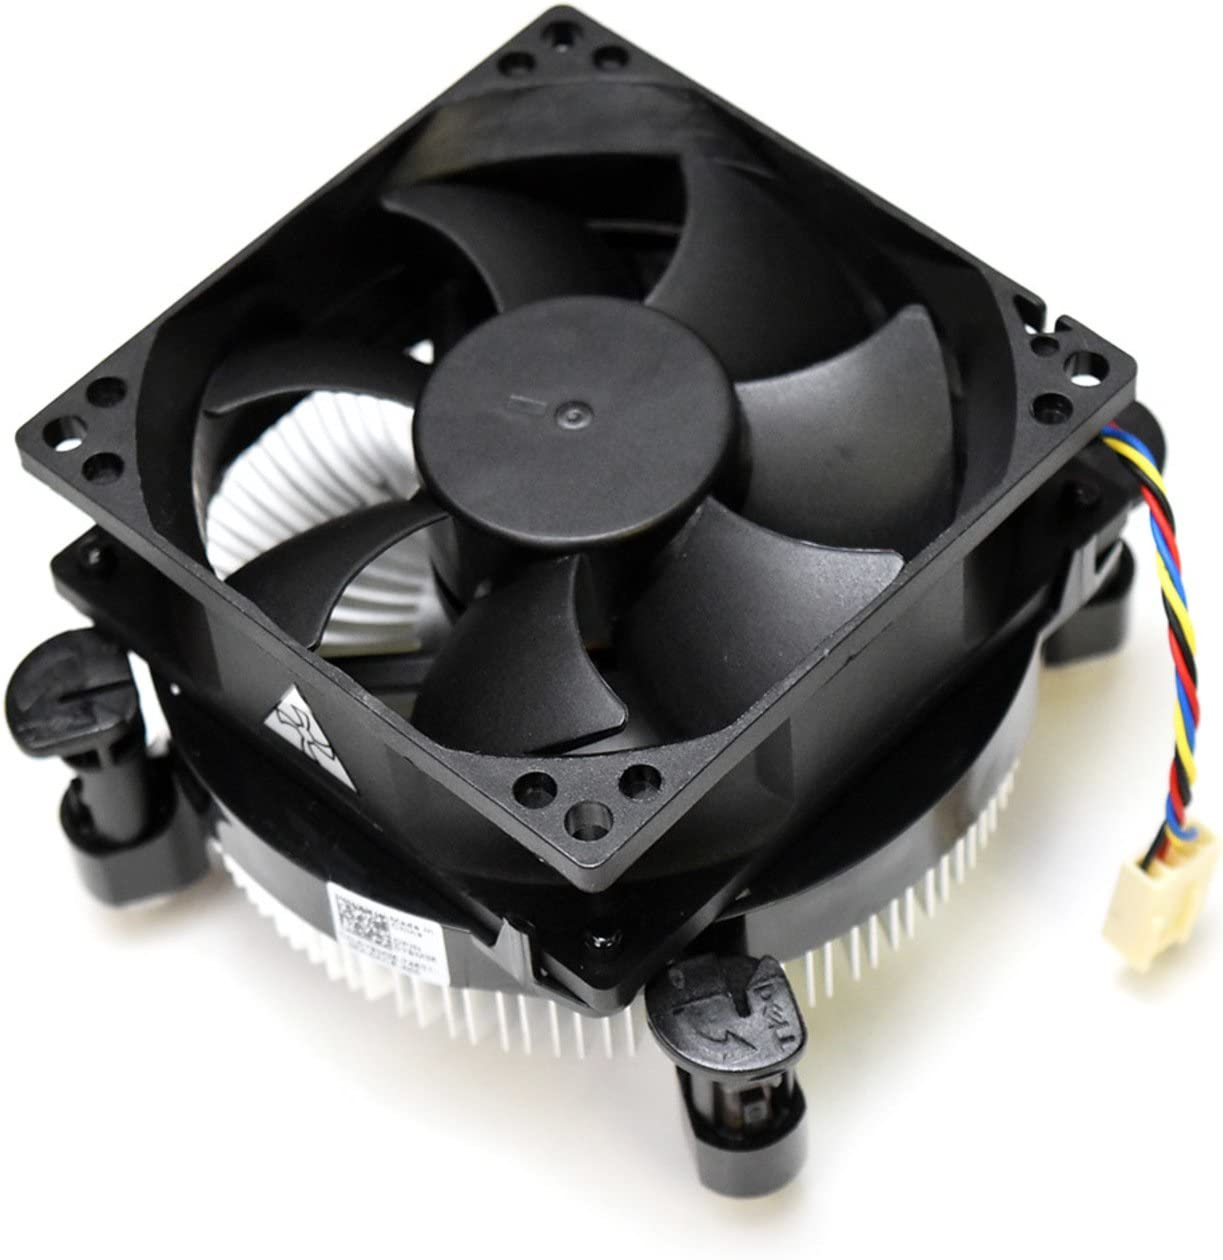 New Genuine Dell Inspiron 580/580s XPS 8000 8100 MNTW/SLTW G6950 73W Processor Y9M35 Pushpin Heatsink Fan Assembly 73W CPU Thermal Cooling 4-Pin 4-Wire Cable R/Y/BLU/BLK JPM3M PGC17 7F2KK